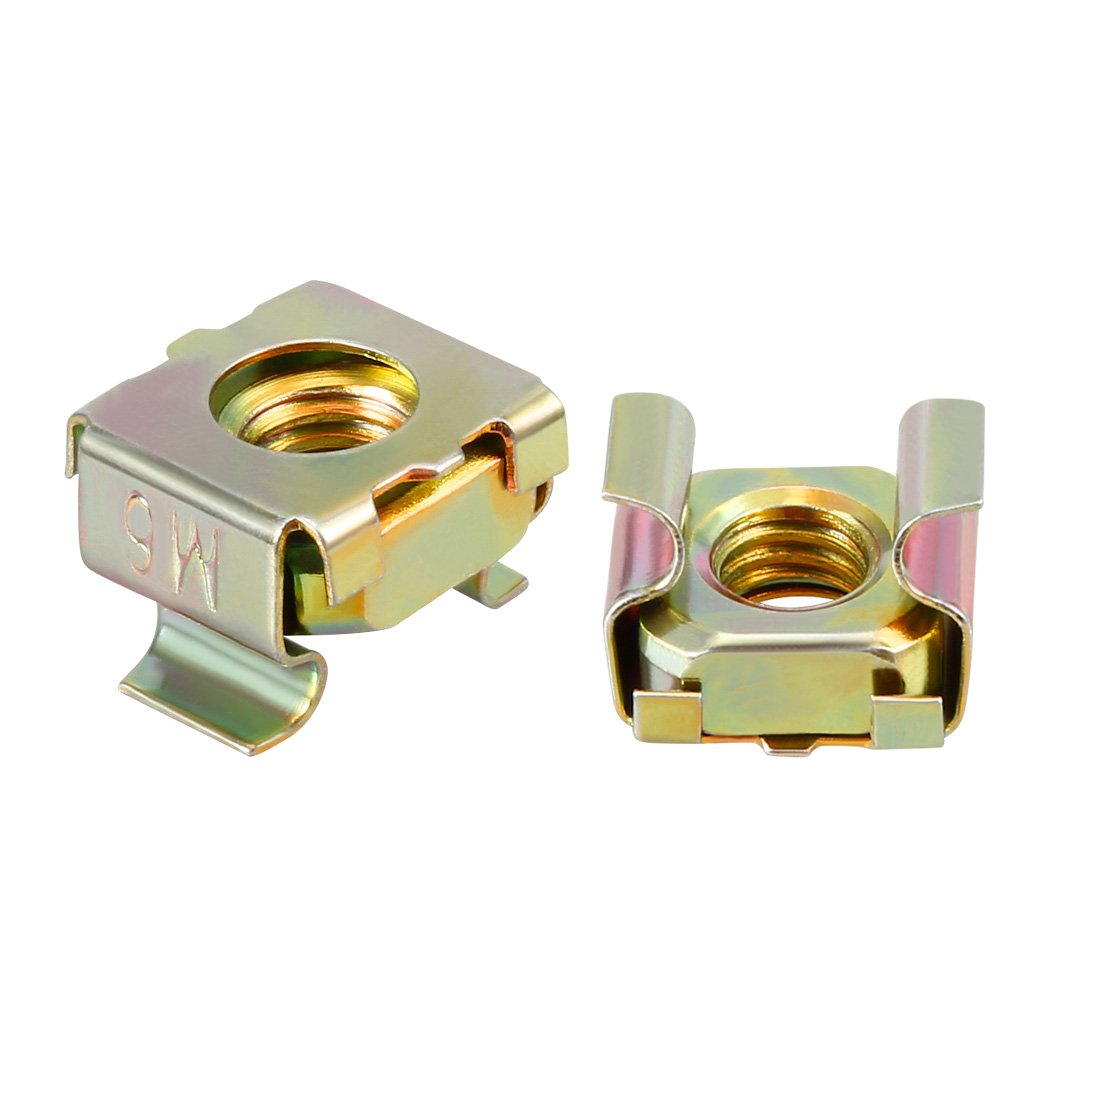 uxcell 55 Pack, M6 Cage Nut, Carbon Steel Zinc Plated Bronze Tone for Server Shelf Cabinet